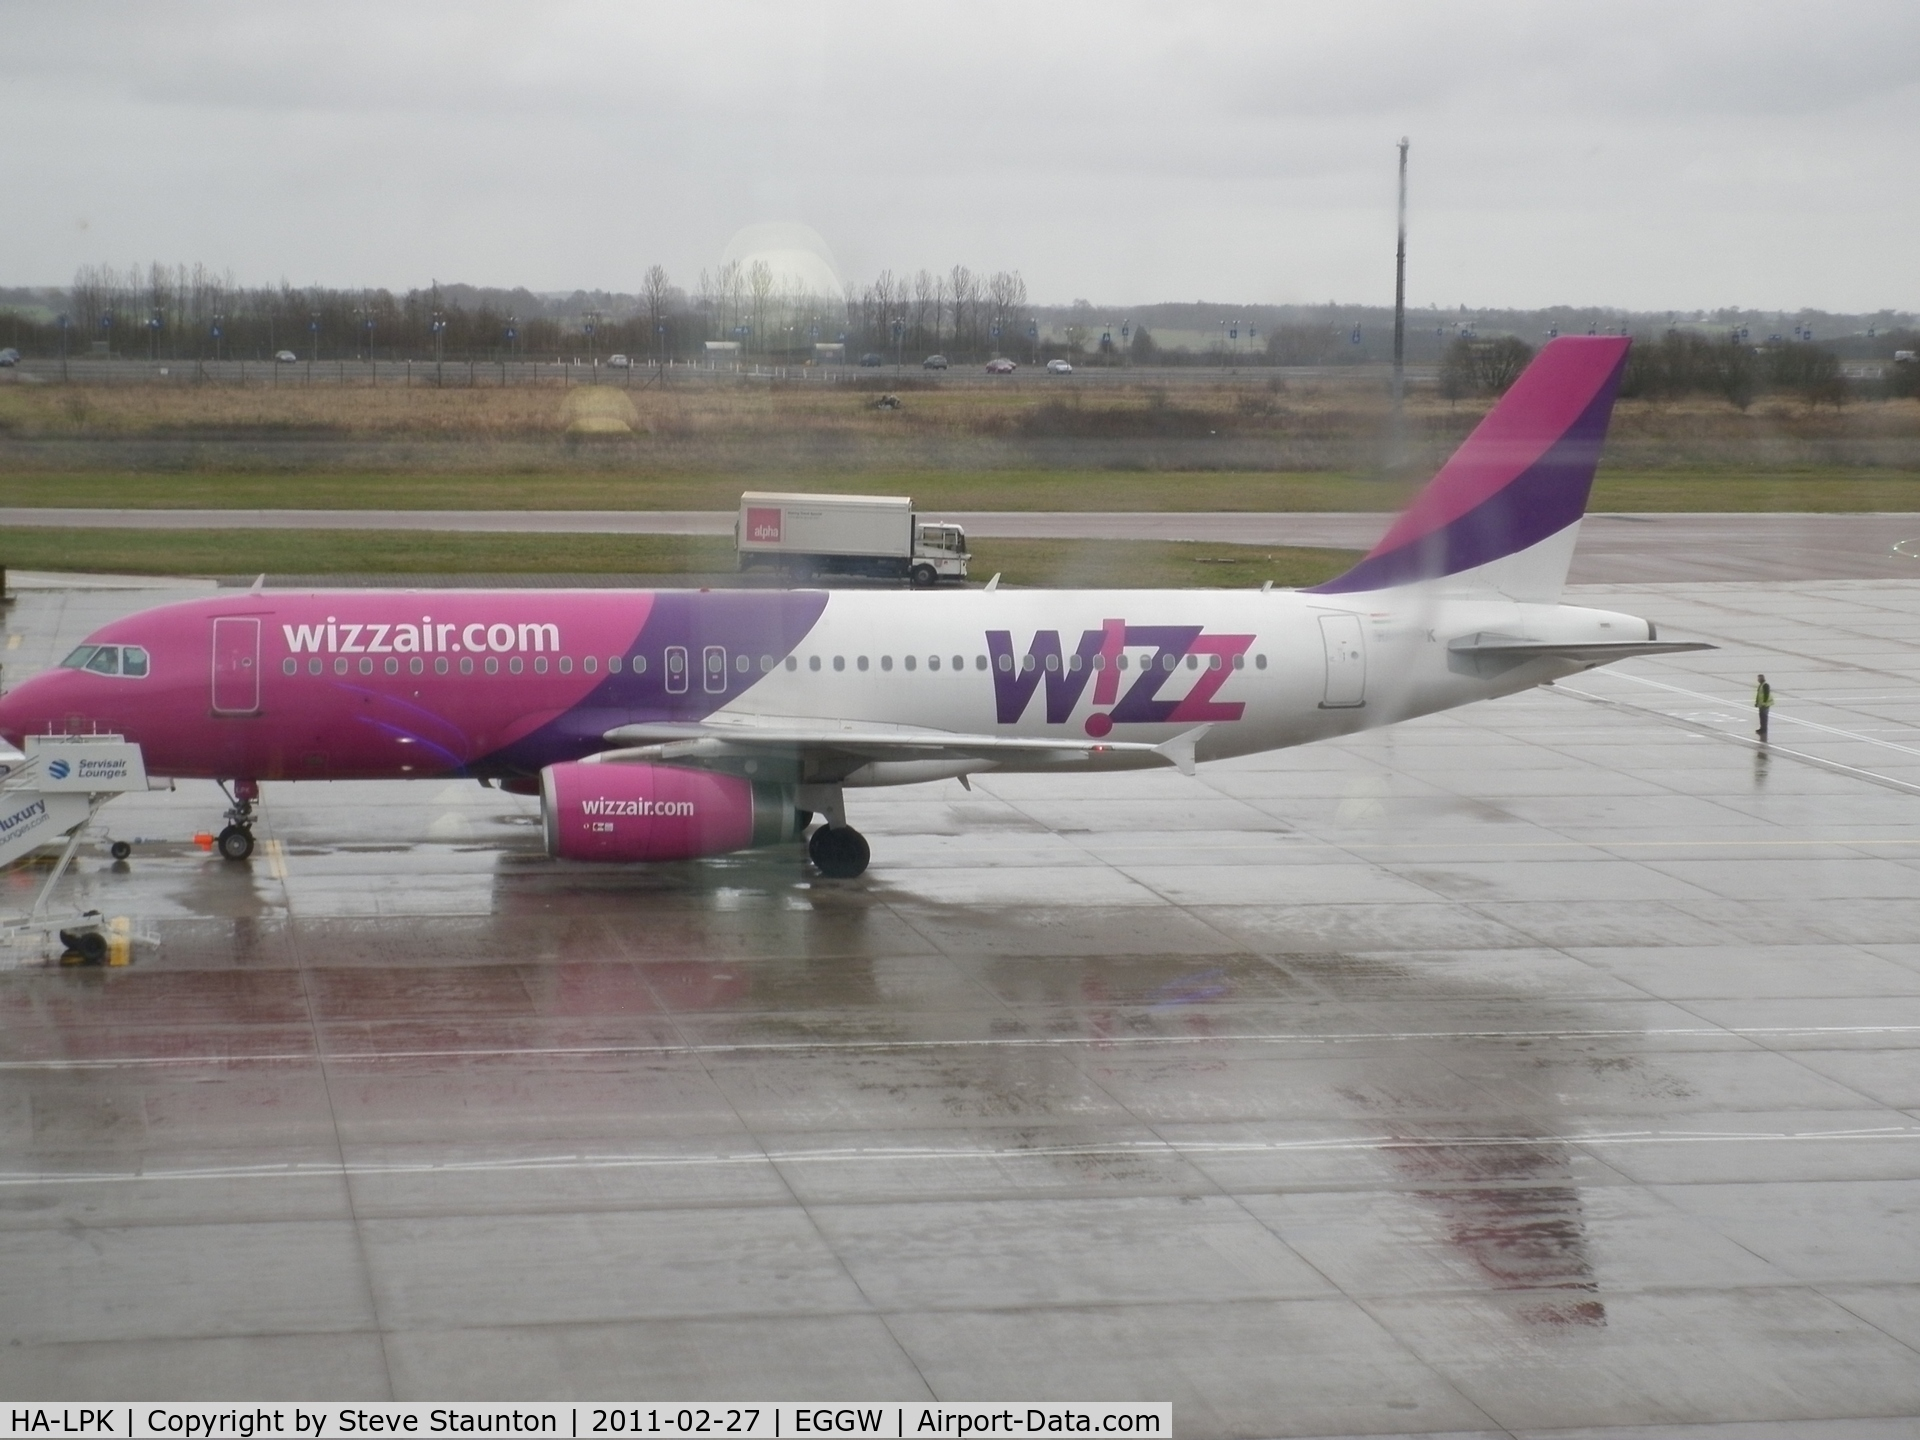 HA-LPK, 2007 Airbus A320-232 C/N 3143, Taken on a wet February morning at Luton whilst waiting to fly to Cyprus